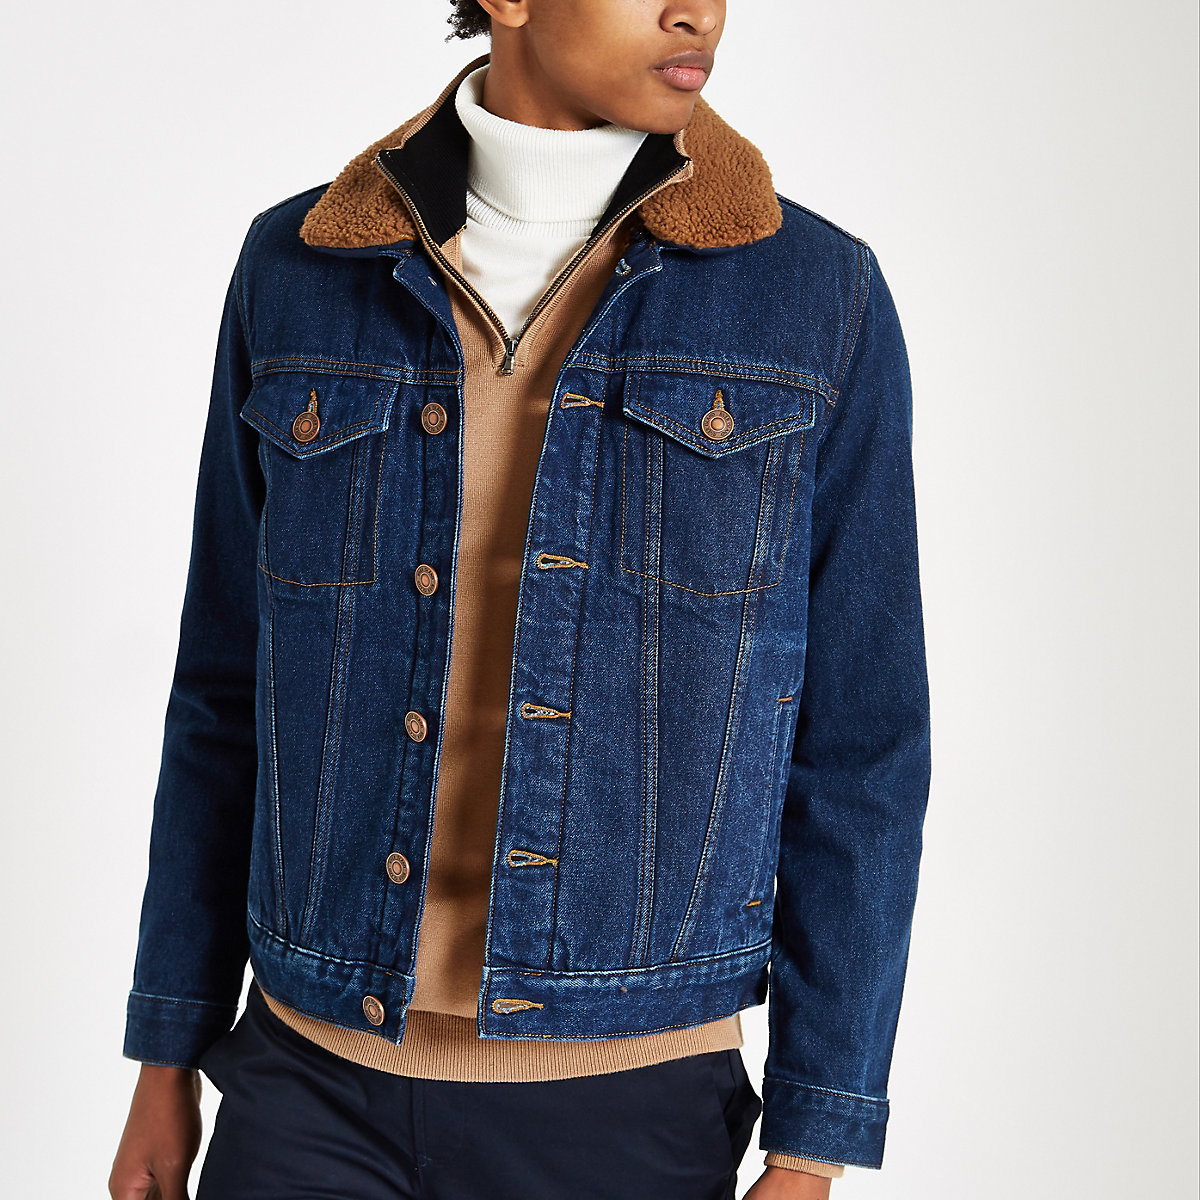 Dark blue borg lined denim jacket